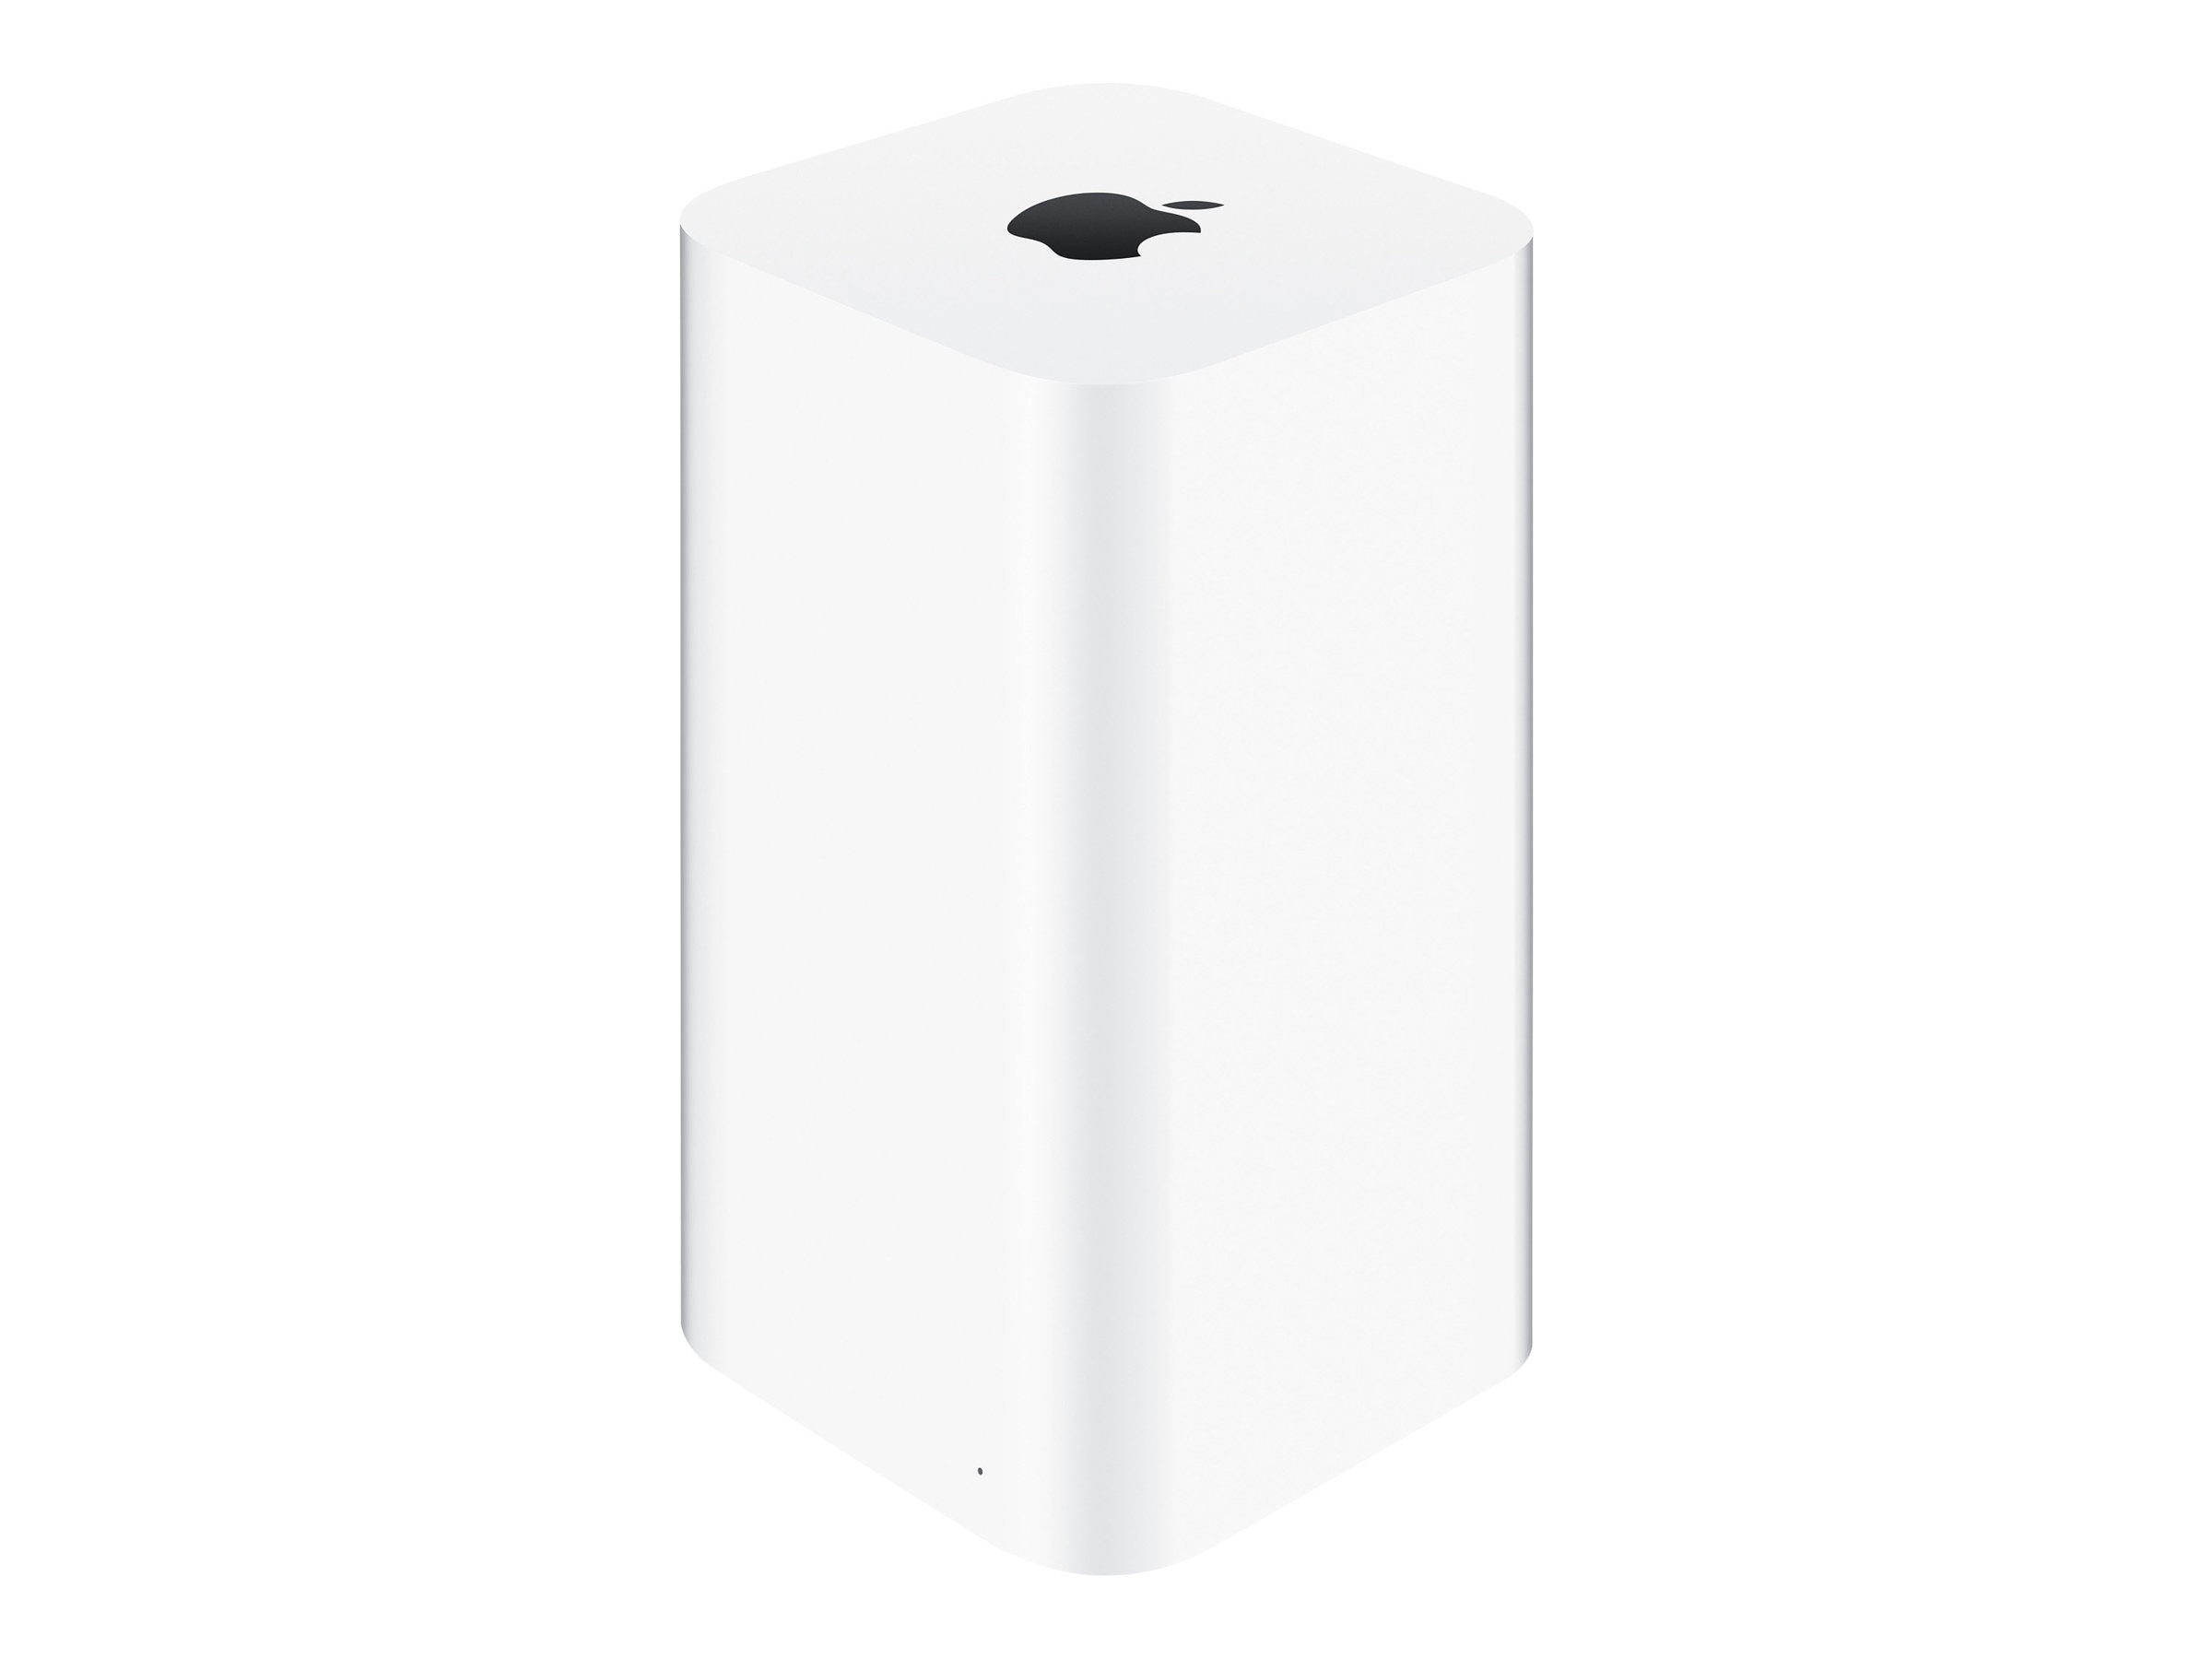 Apple AirPort Time Capsule - 3TB (802.11ac, 2013)